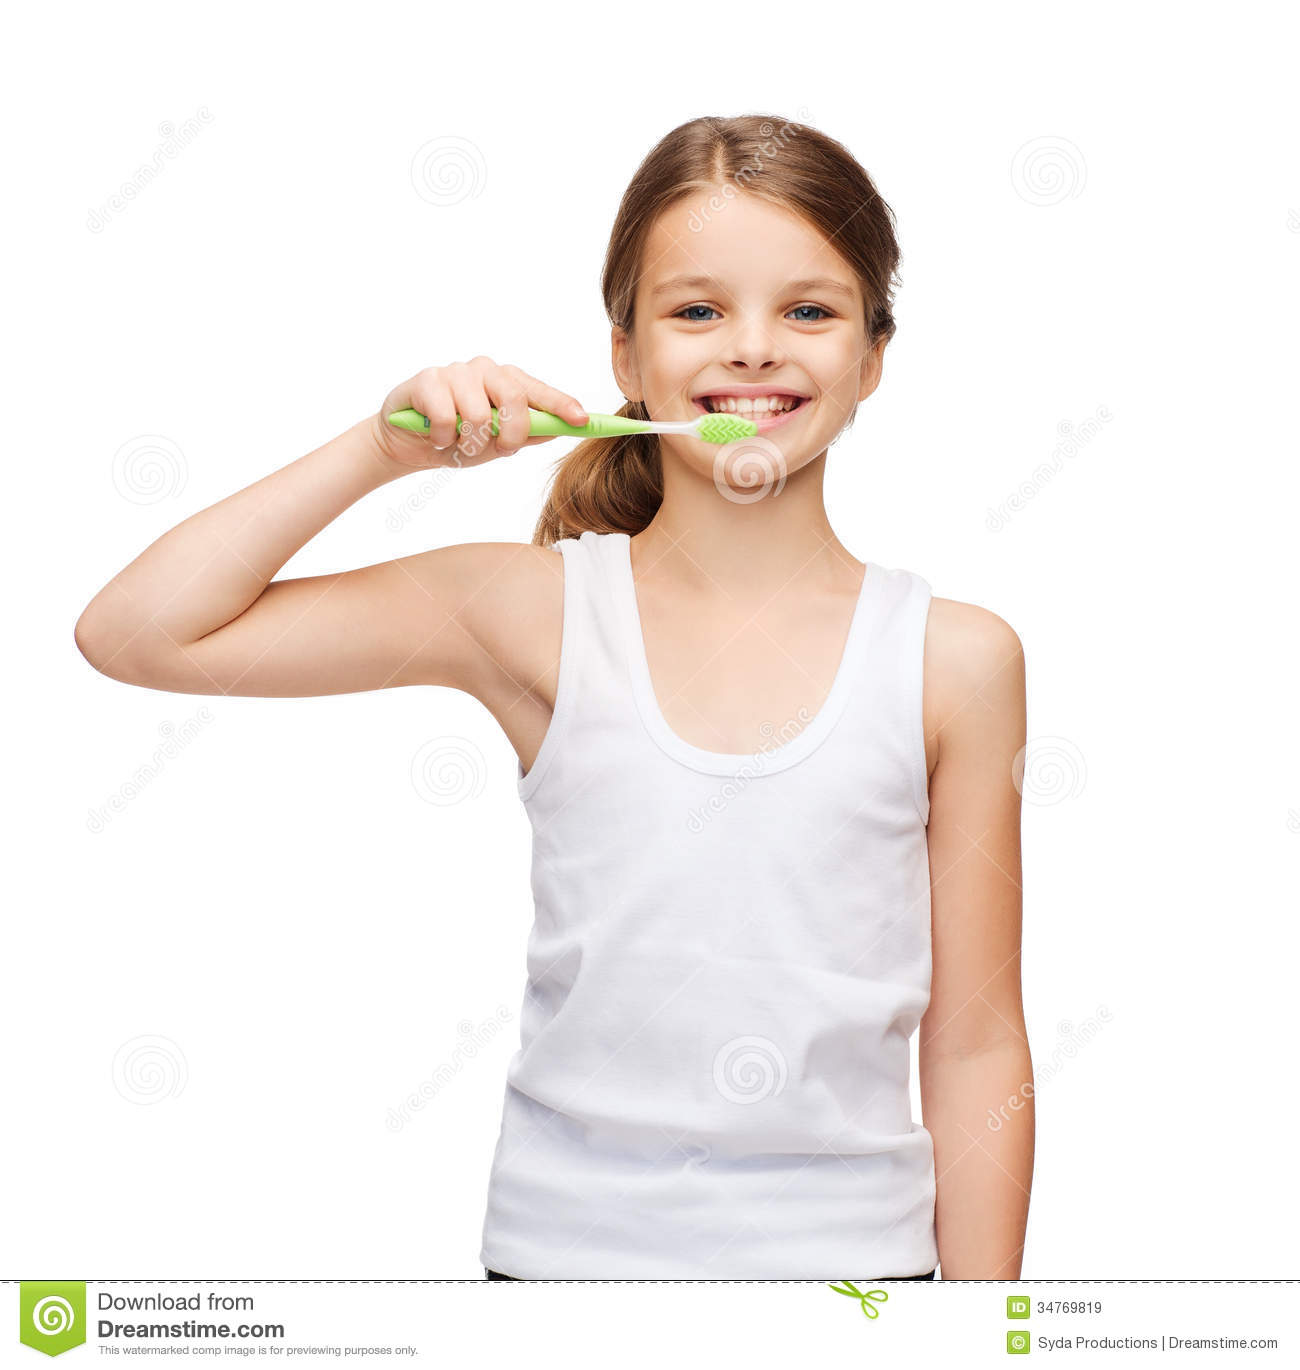 Girl In Blank White Shirt Brushing Her Teeth Stock Image -4182